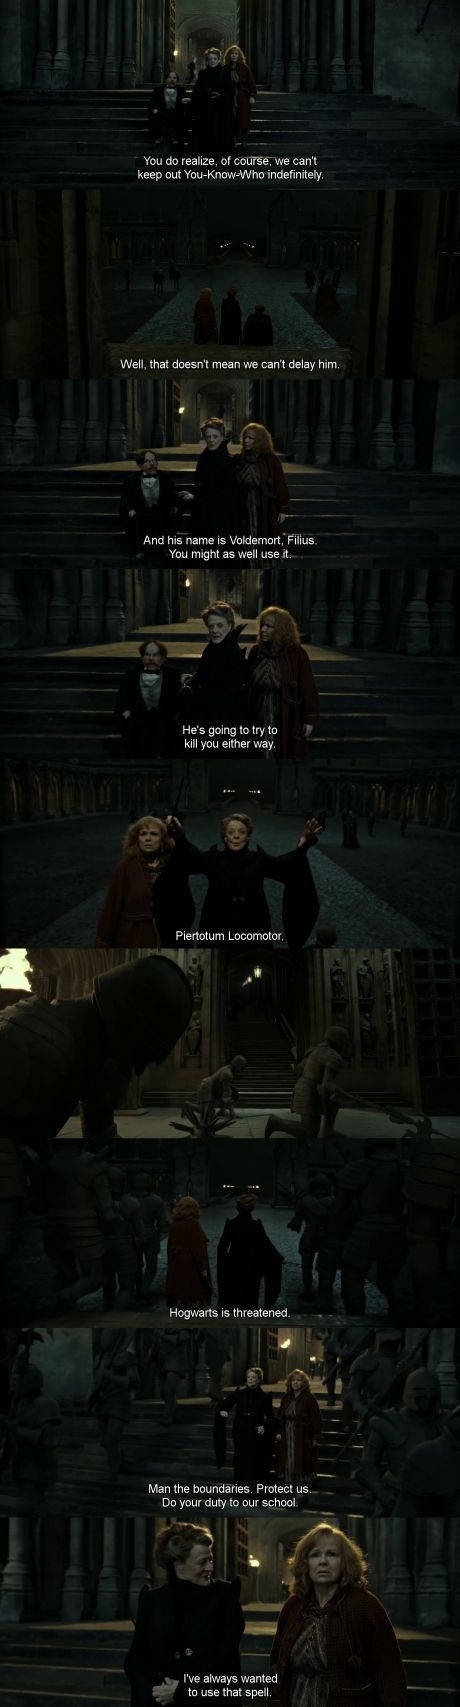 "I read Sorcerer's Stone recently, and I remember Minerva cringing every time Albus said ""Voldemort"". He kept telling her it's just a name, and not to be bothered by it. I love that she's finally accepted that fact. And that she's now the one telling others what Albus told her. Thus, filling that little role he once held."